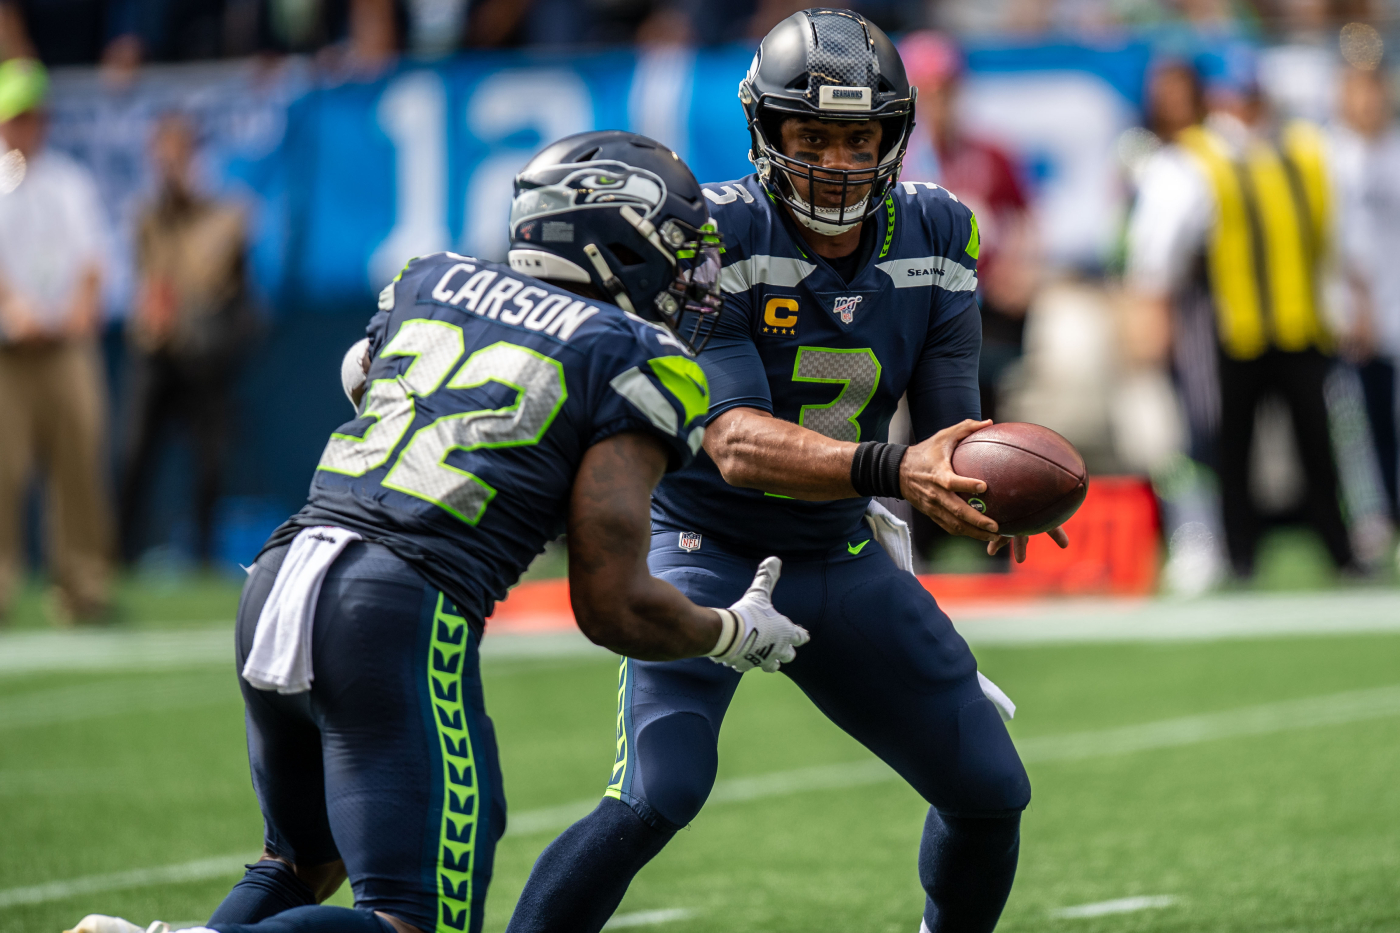 It appears that the Seattle Seahawks' star RB, Chris Carson, will miss some time. This means that their playoff hopes could be in jeopardy.